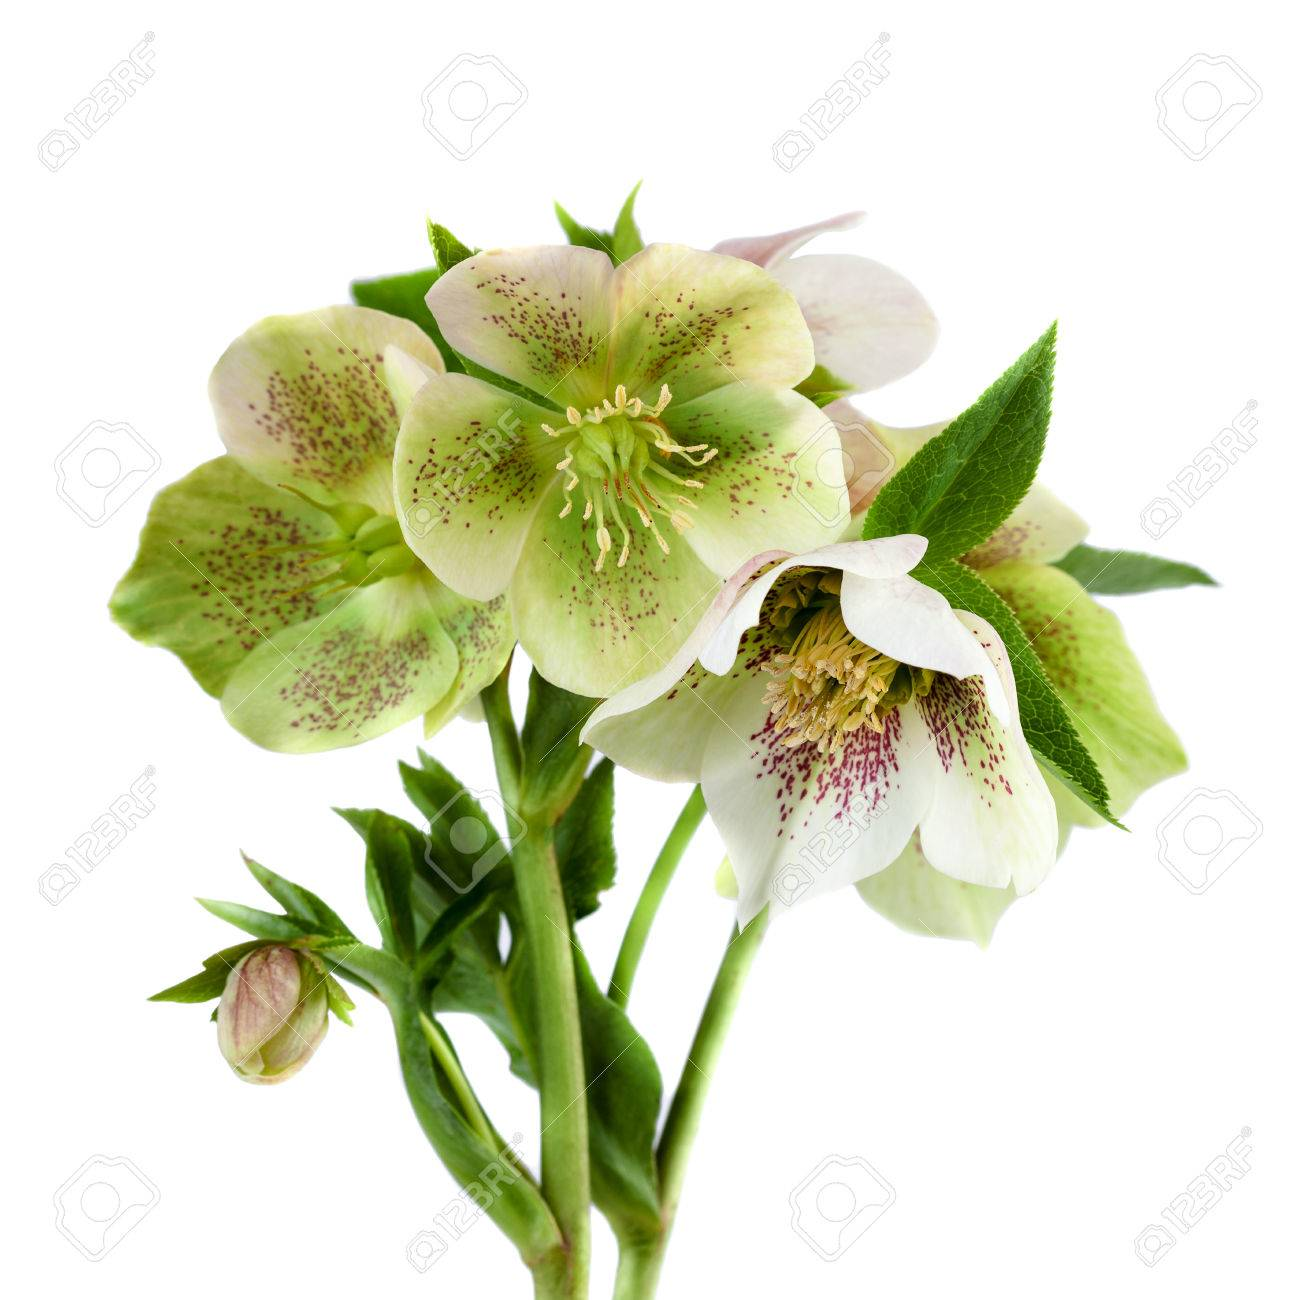 Lenten Rose Flower Closeup Hellebore Flowers With Leaves Isolated